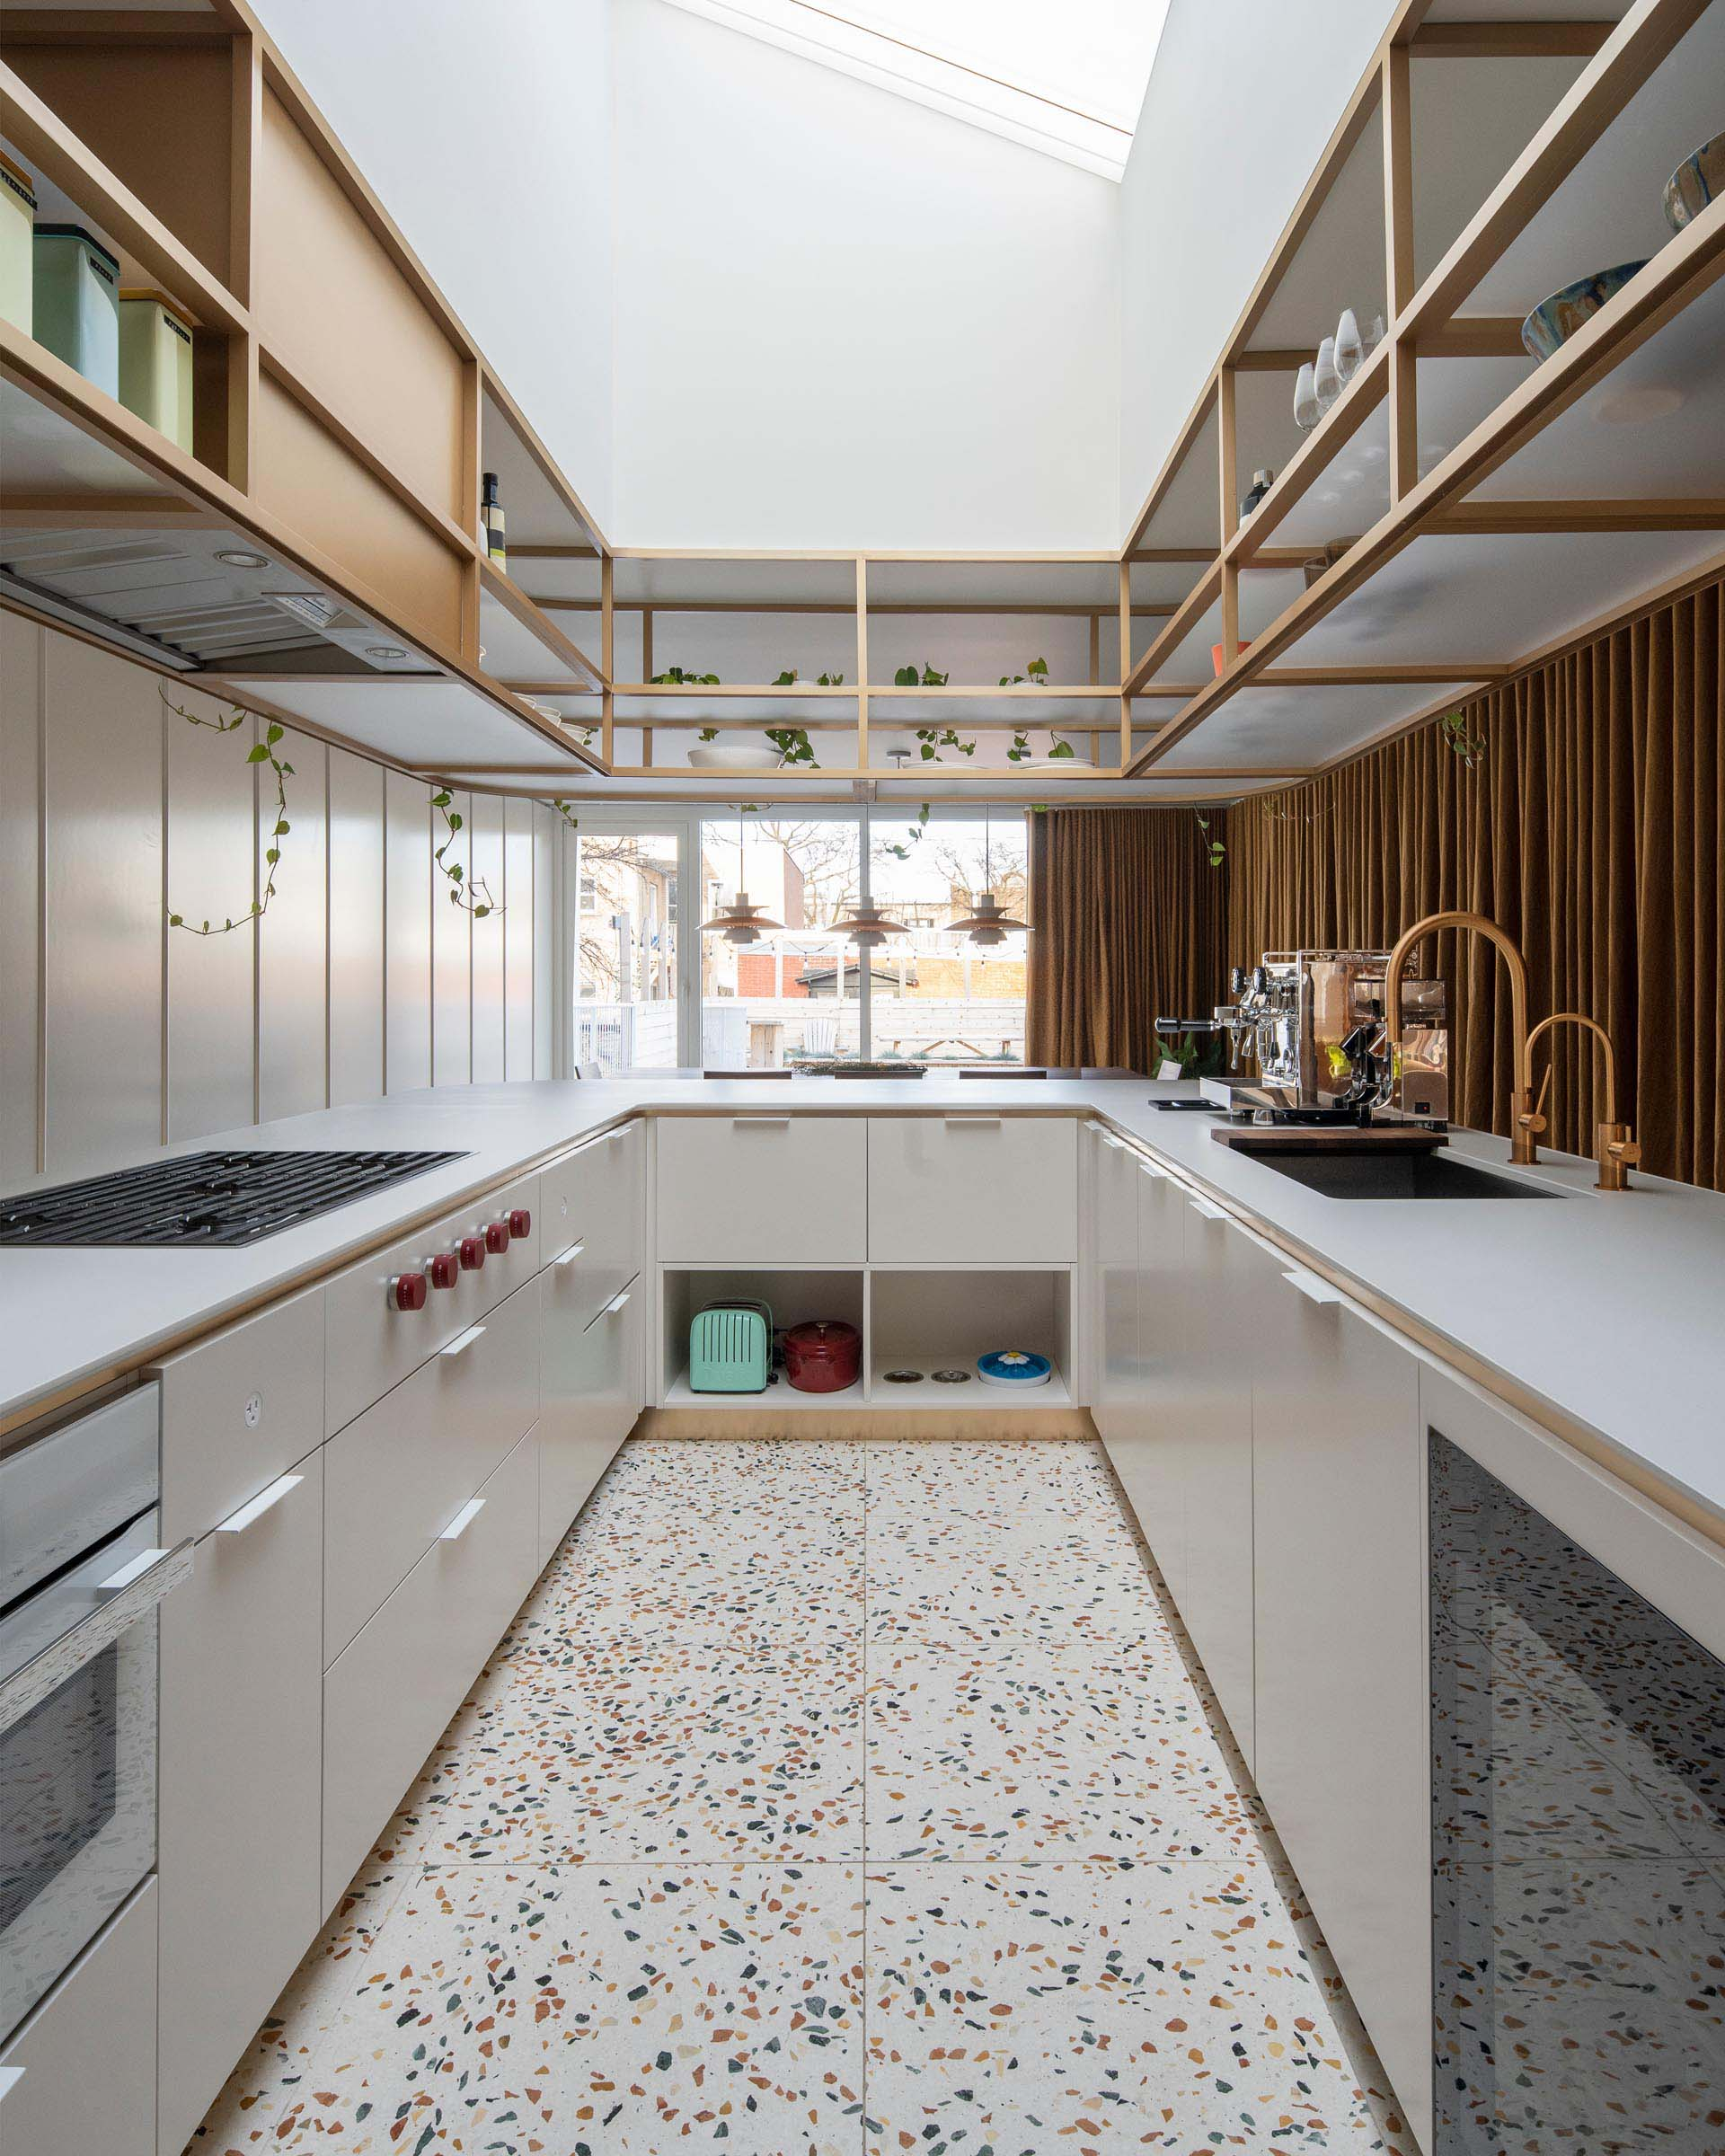 This modern U-shaped kitchen has a terrazzo tile floor, and an elegantly curved countertop with matching upper shelves that are open for easy access.